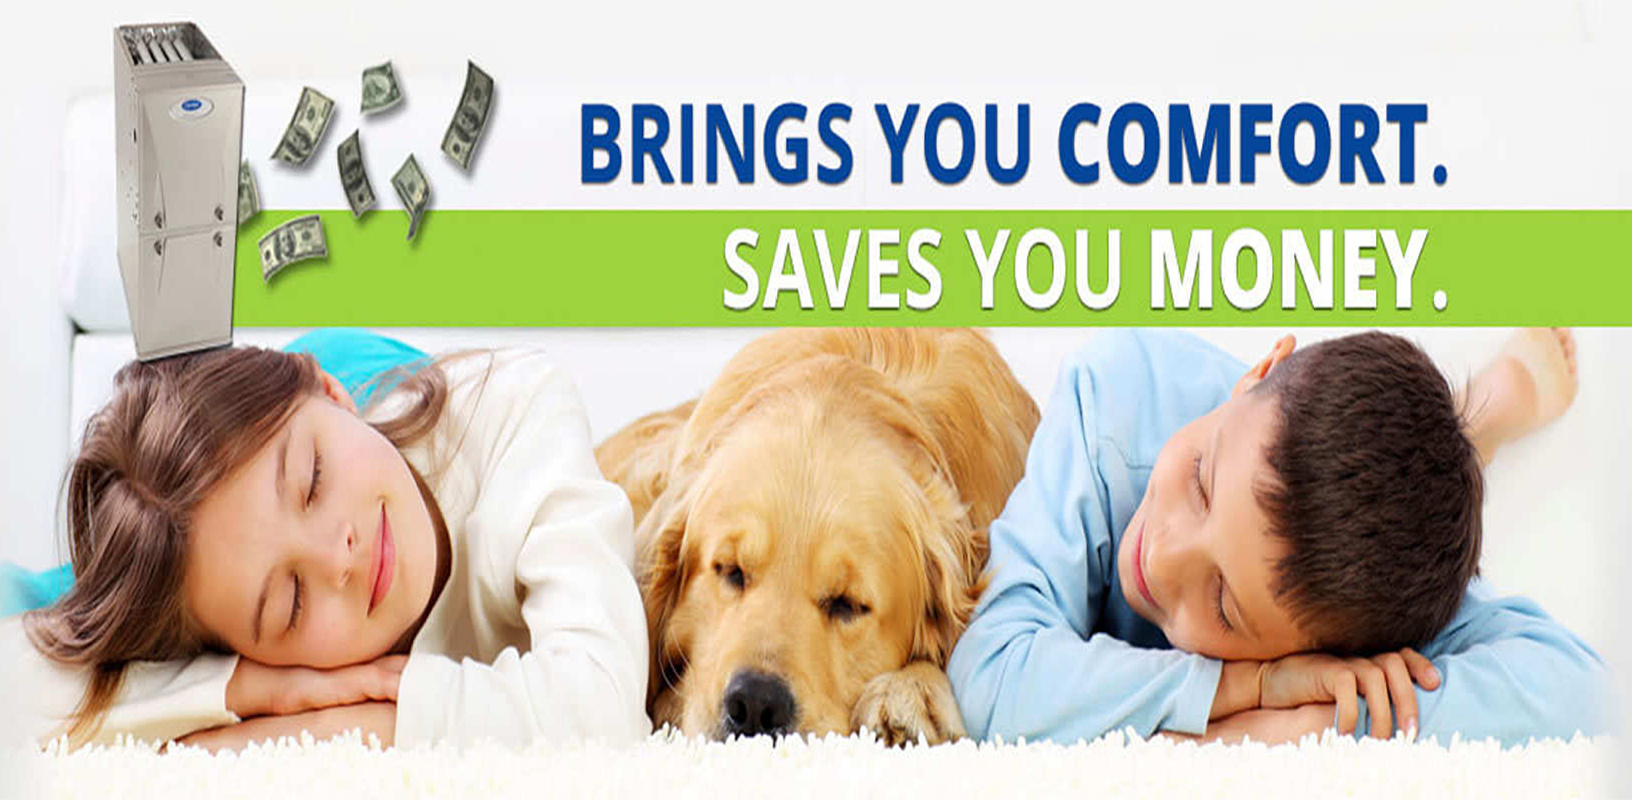 BRINGS YOU COMFORT. SAVES YOU MONEY